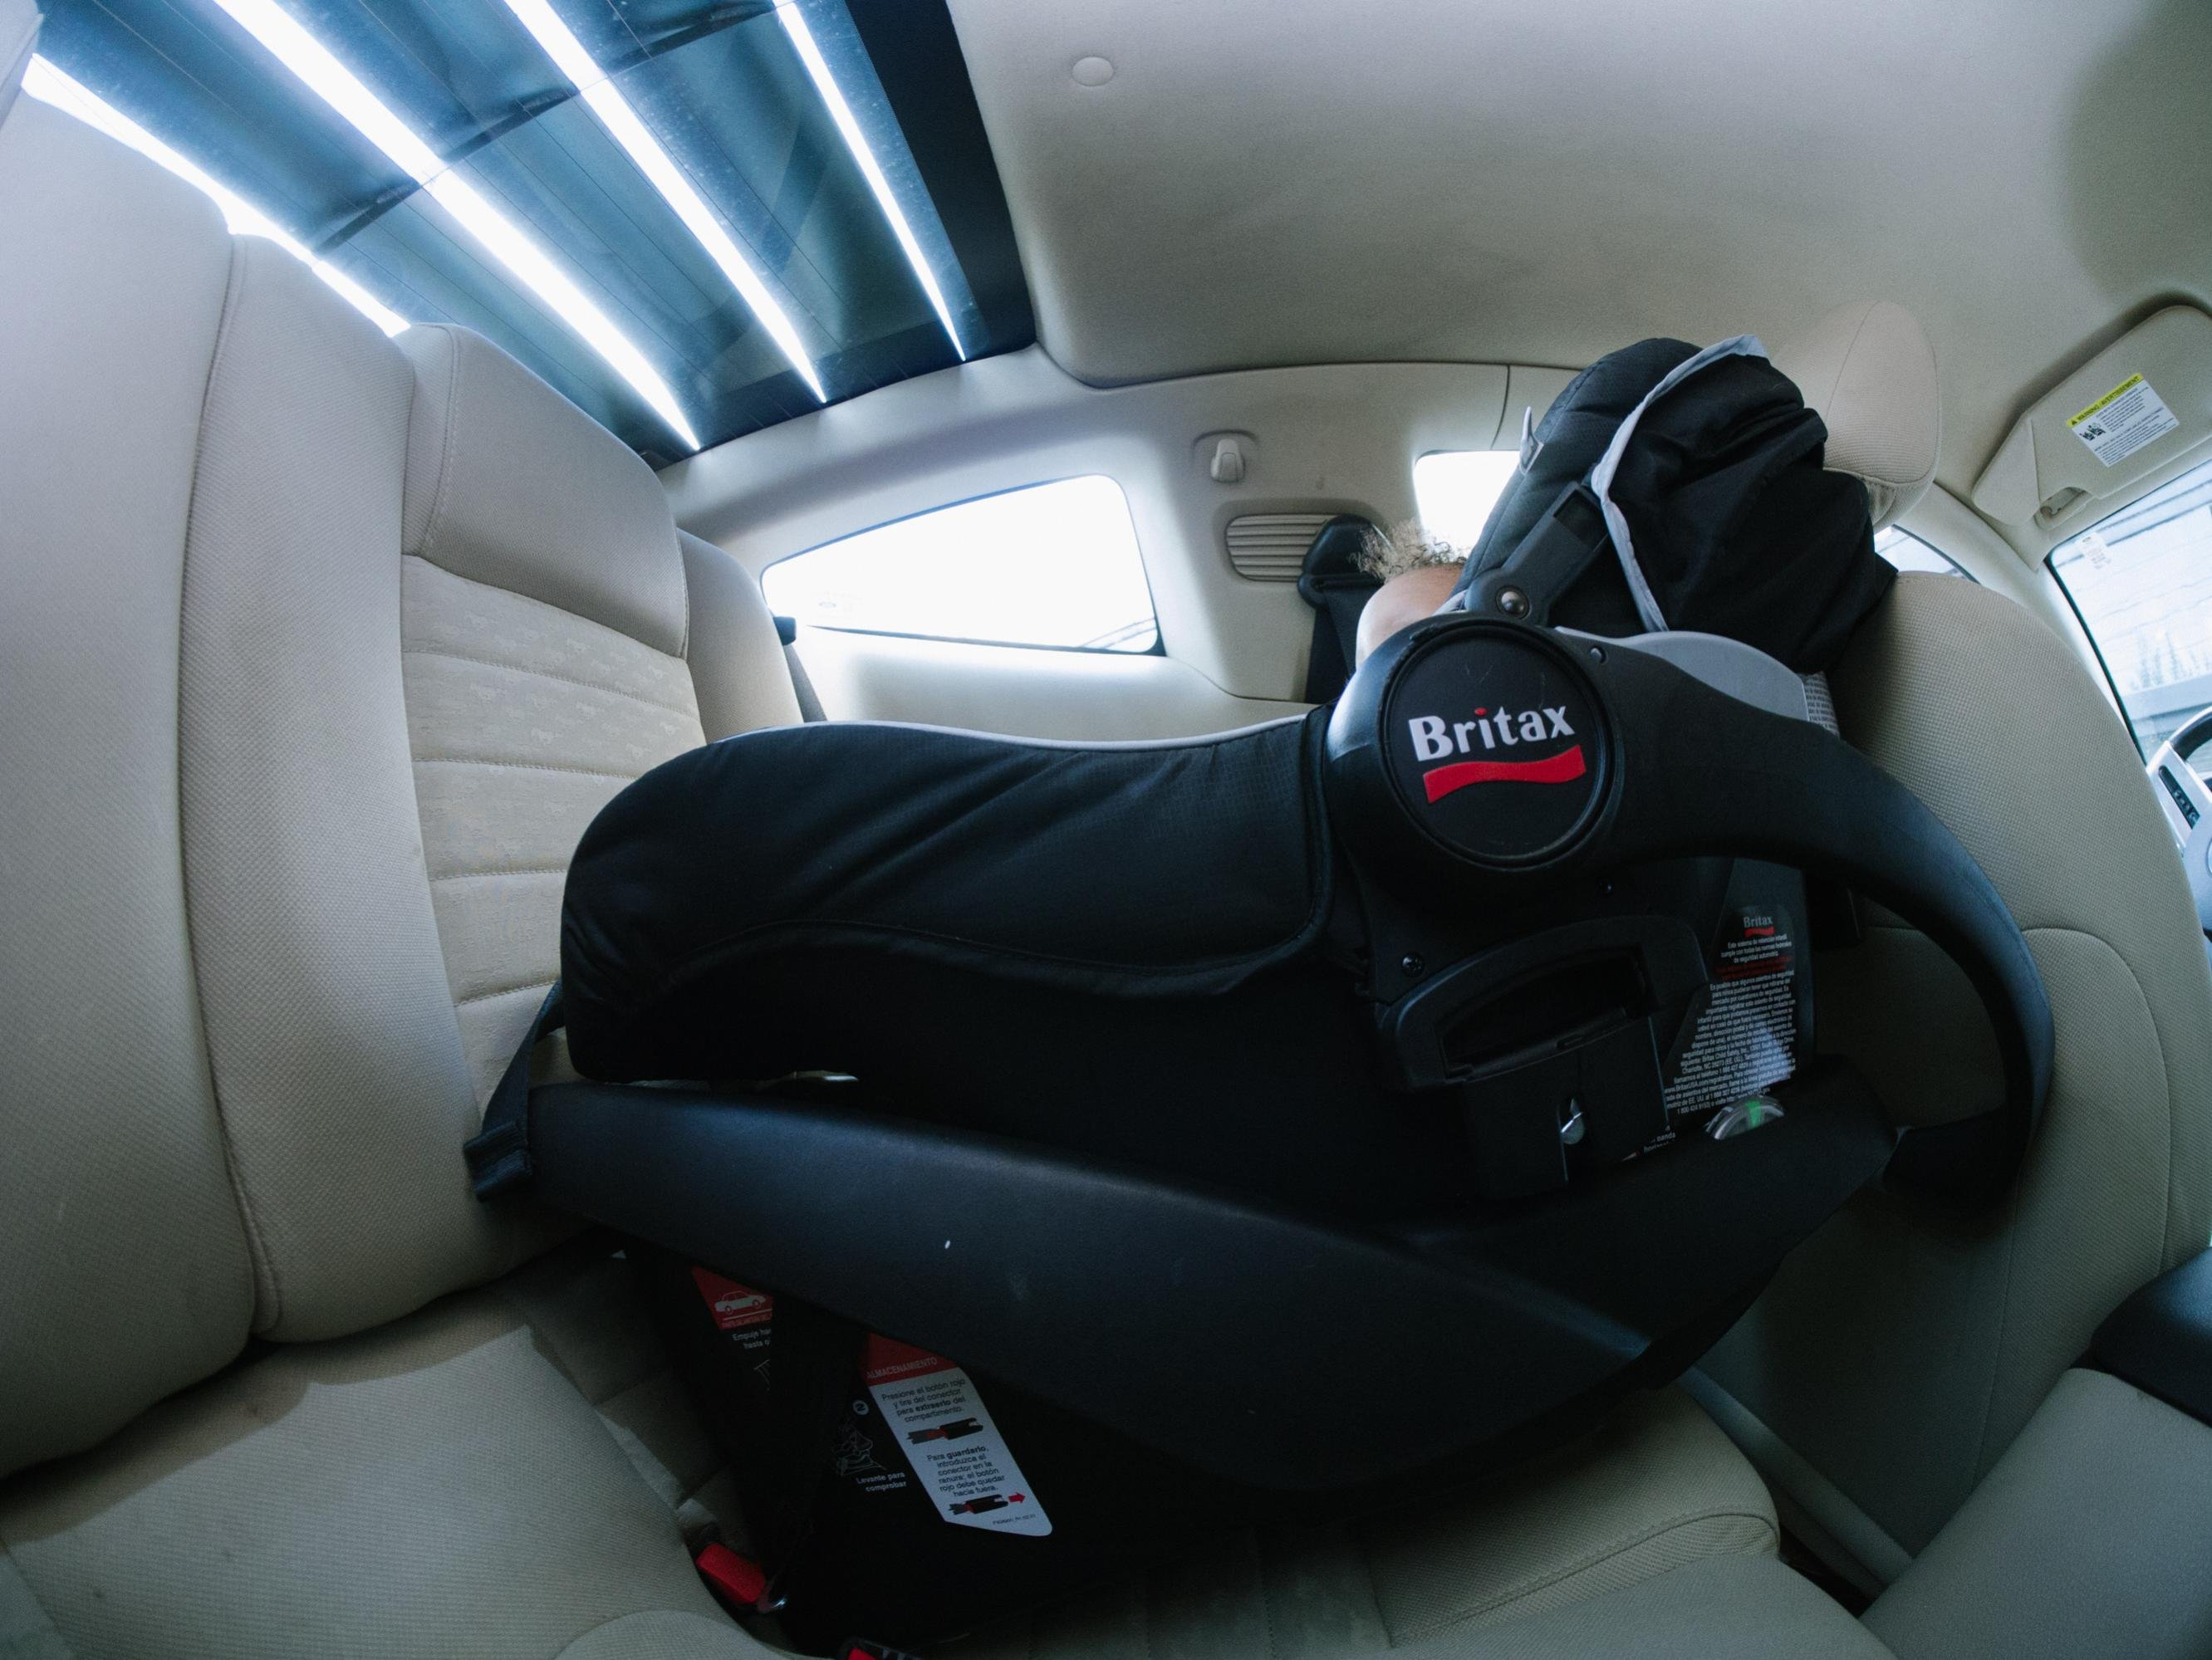 2006 Mustang and Britax Car Seat fit? - Ford Mustang Forum